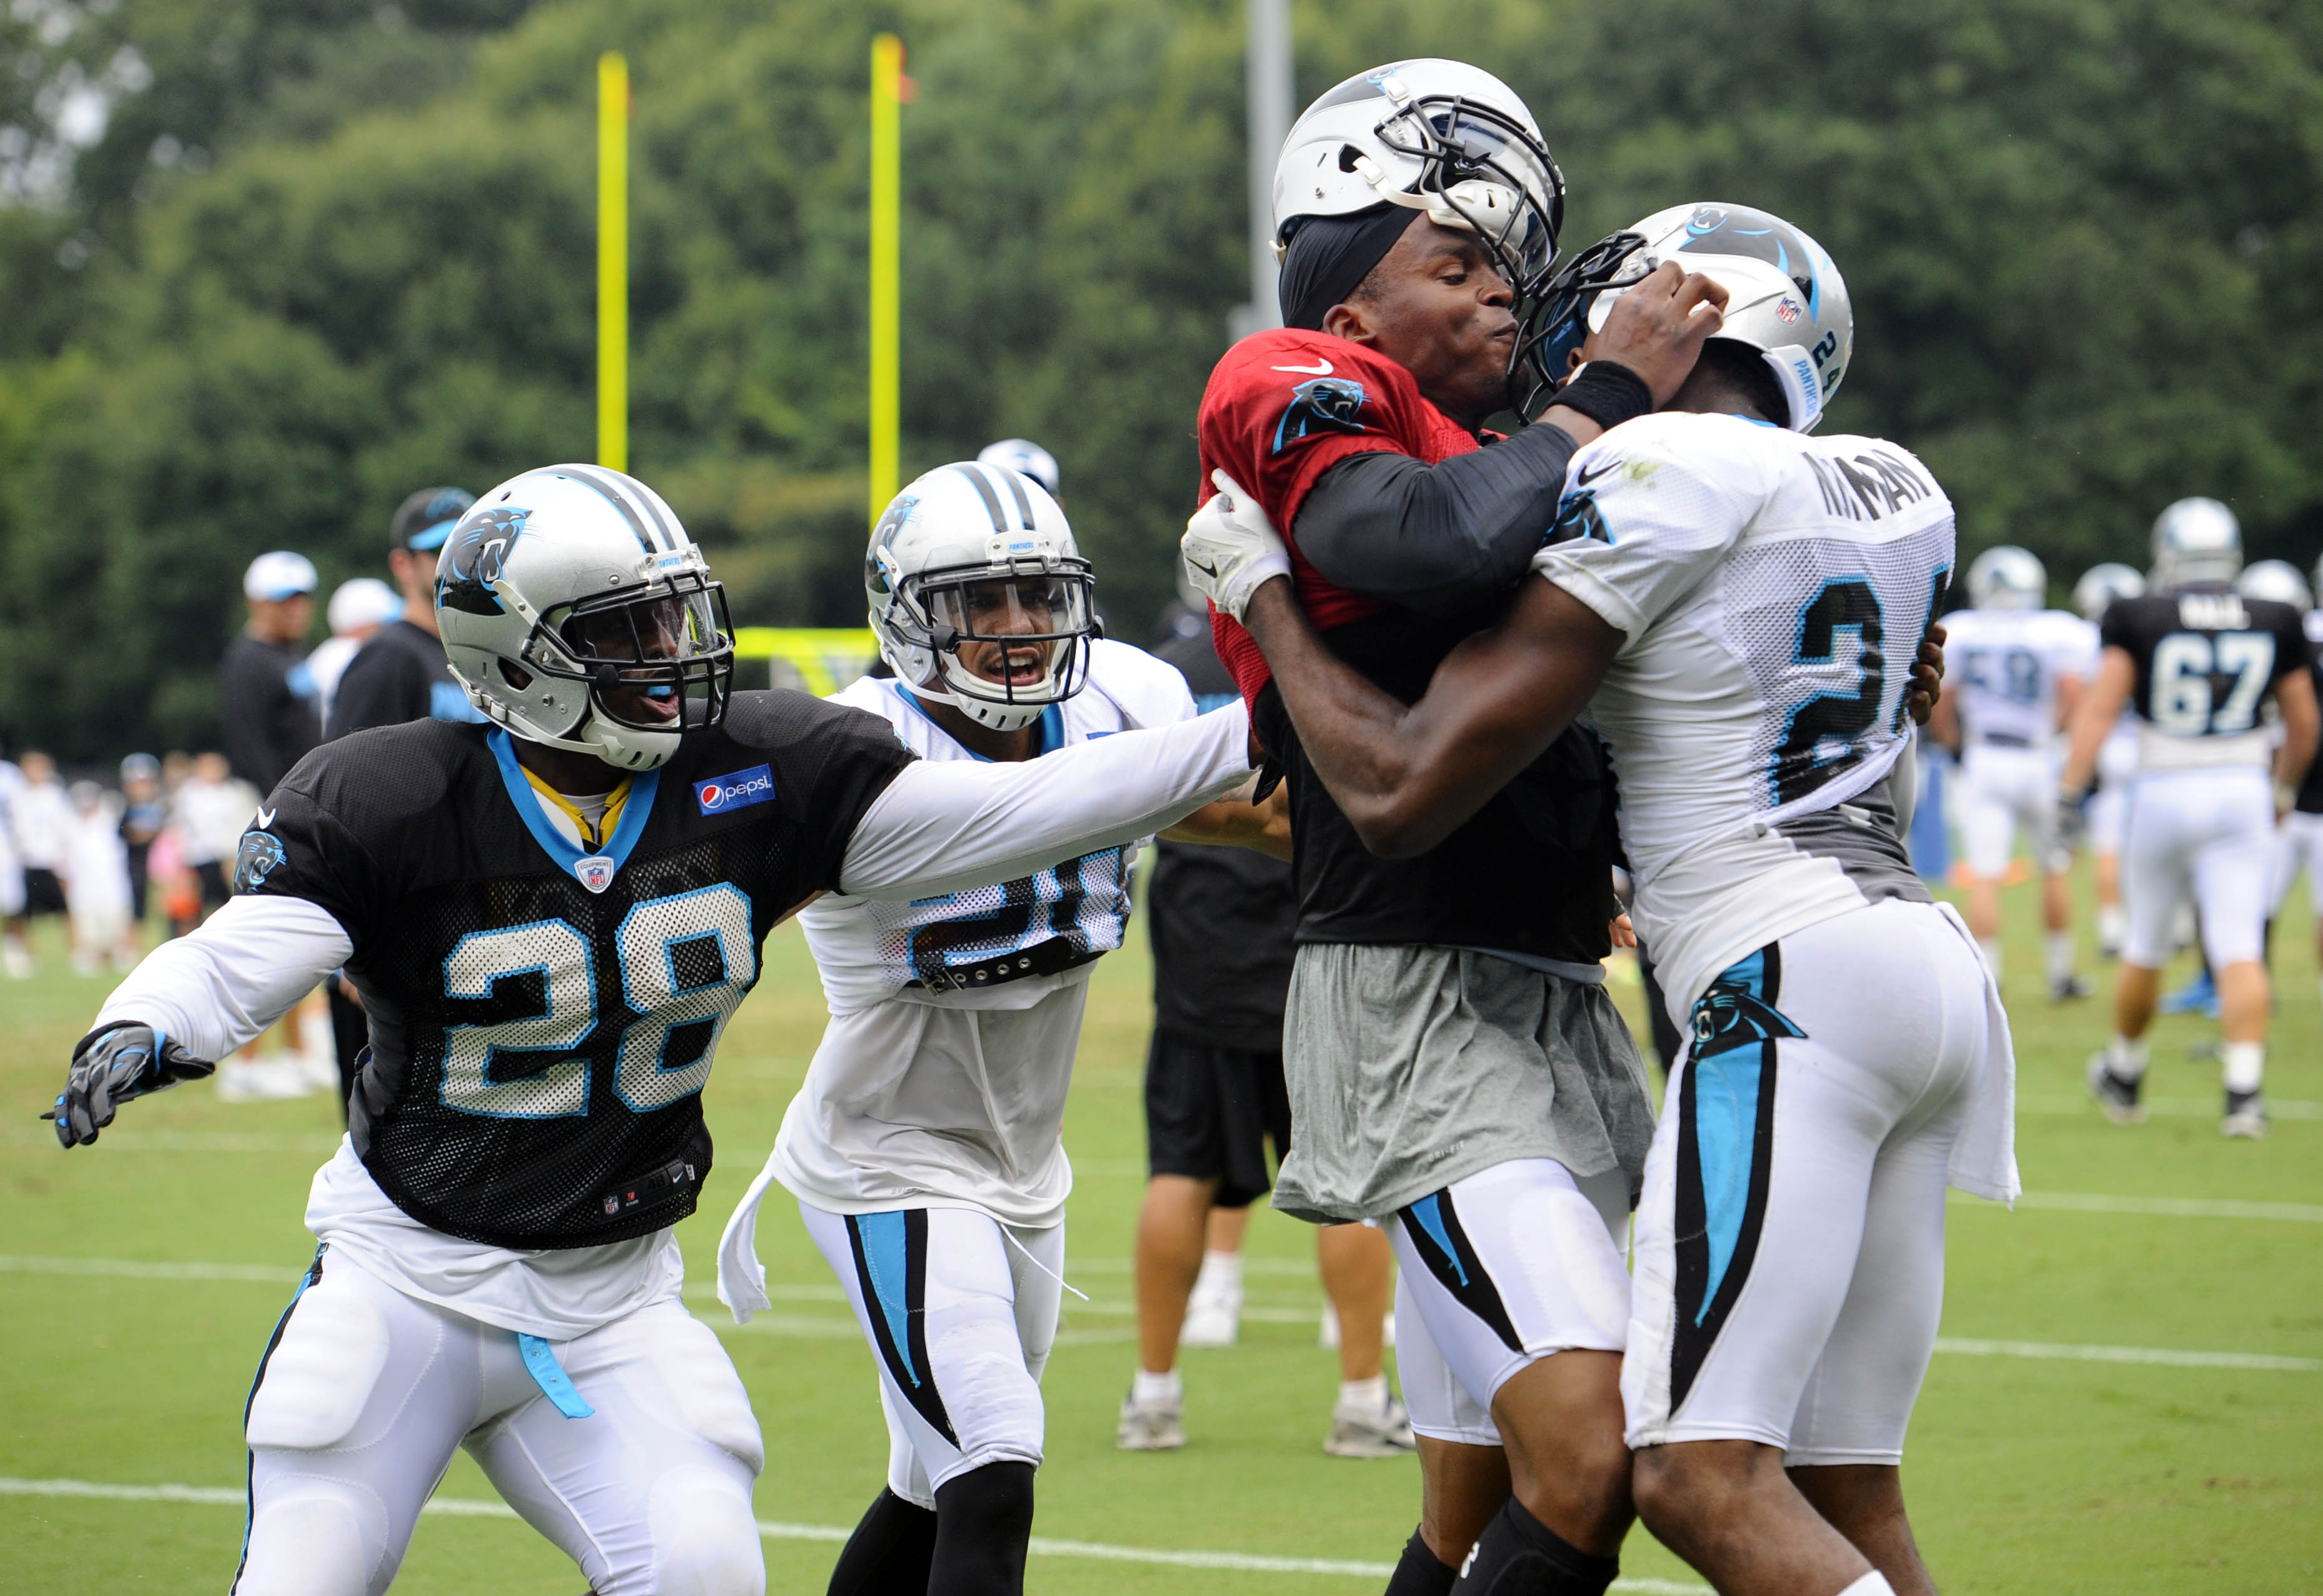 Carolina Panthers' Cam Newton (1) and Josh Norman (24) scuffle at the teams NFL football training camp at Wofford College in Spartanburg, S.C., Monday, Aug. 10, 2015. (David T. Foster III/The Charlotte Observer via AP)  MAGS OUT; TV OUT; MANDATORY CREDIT.